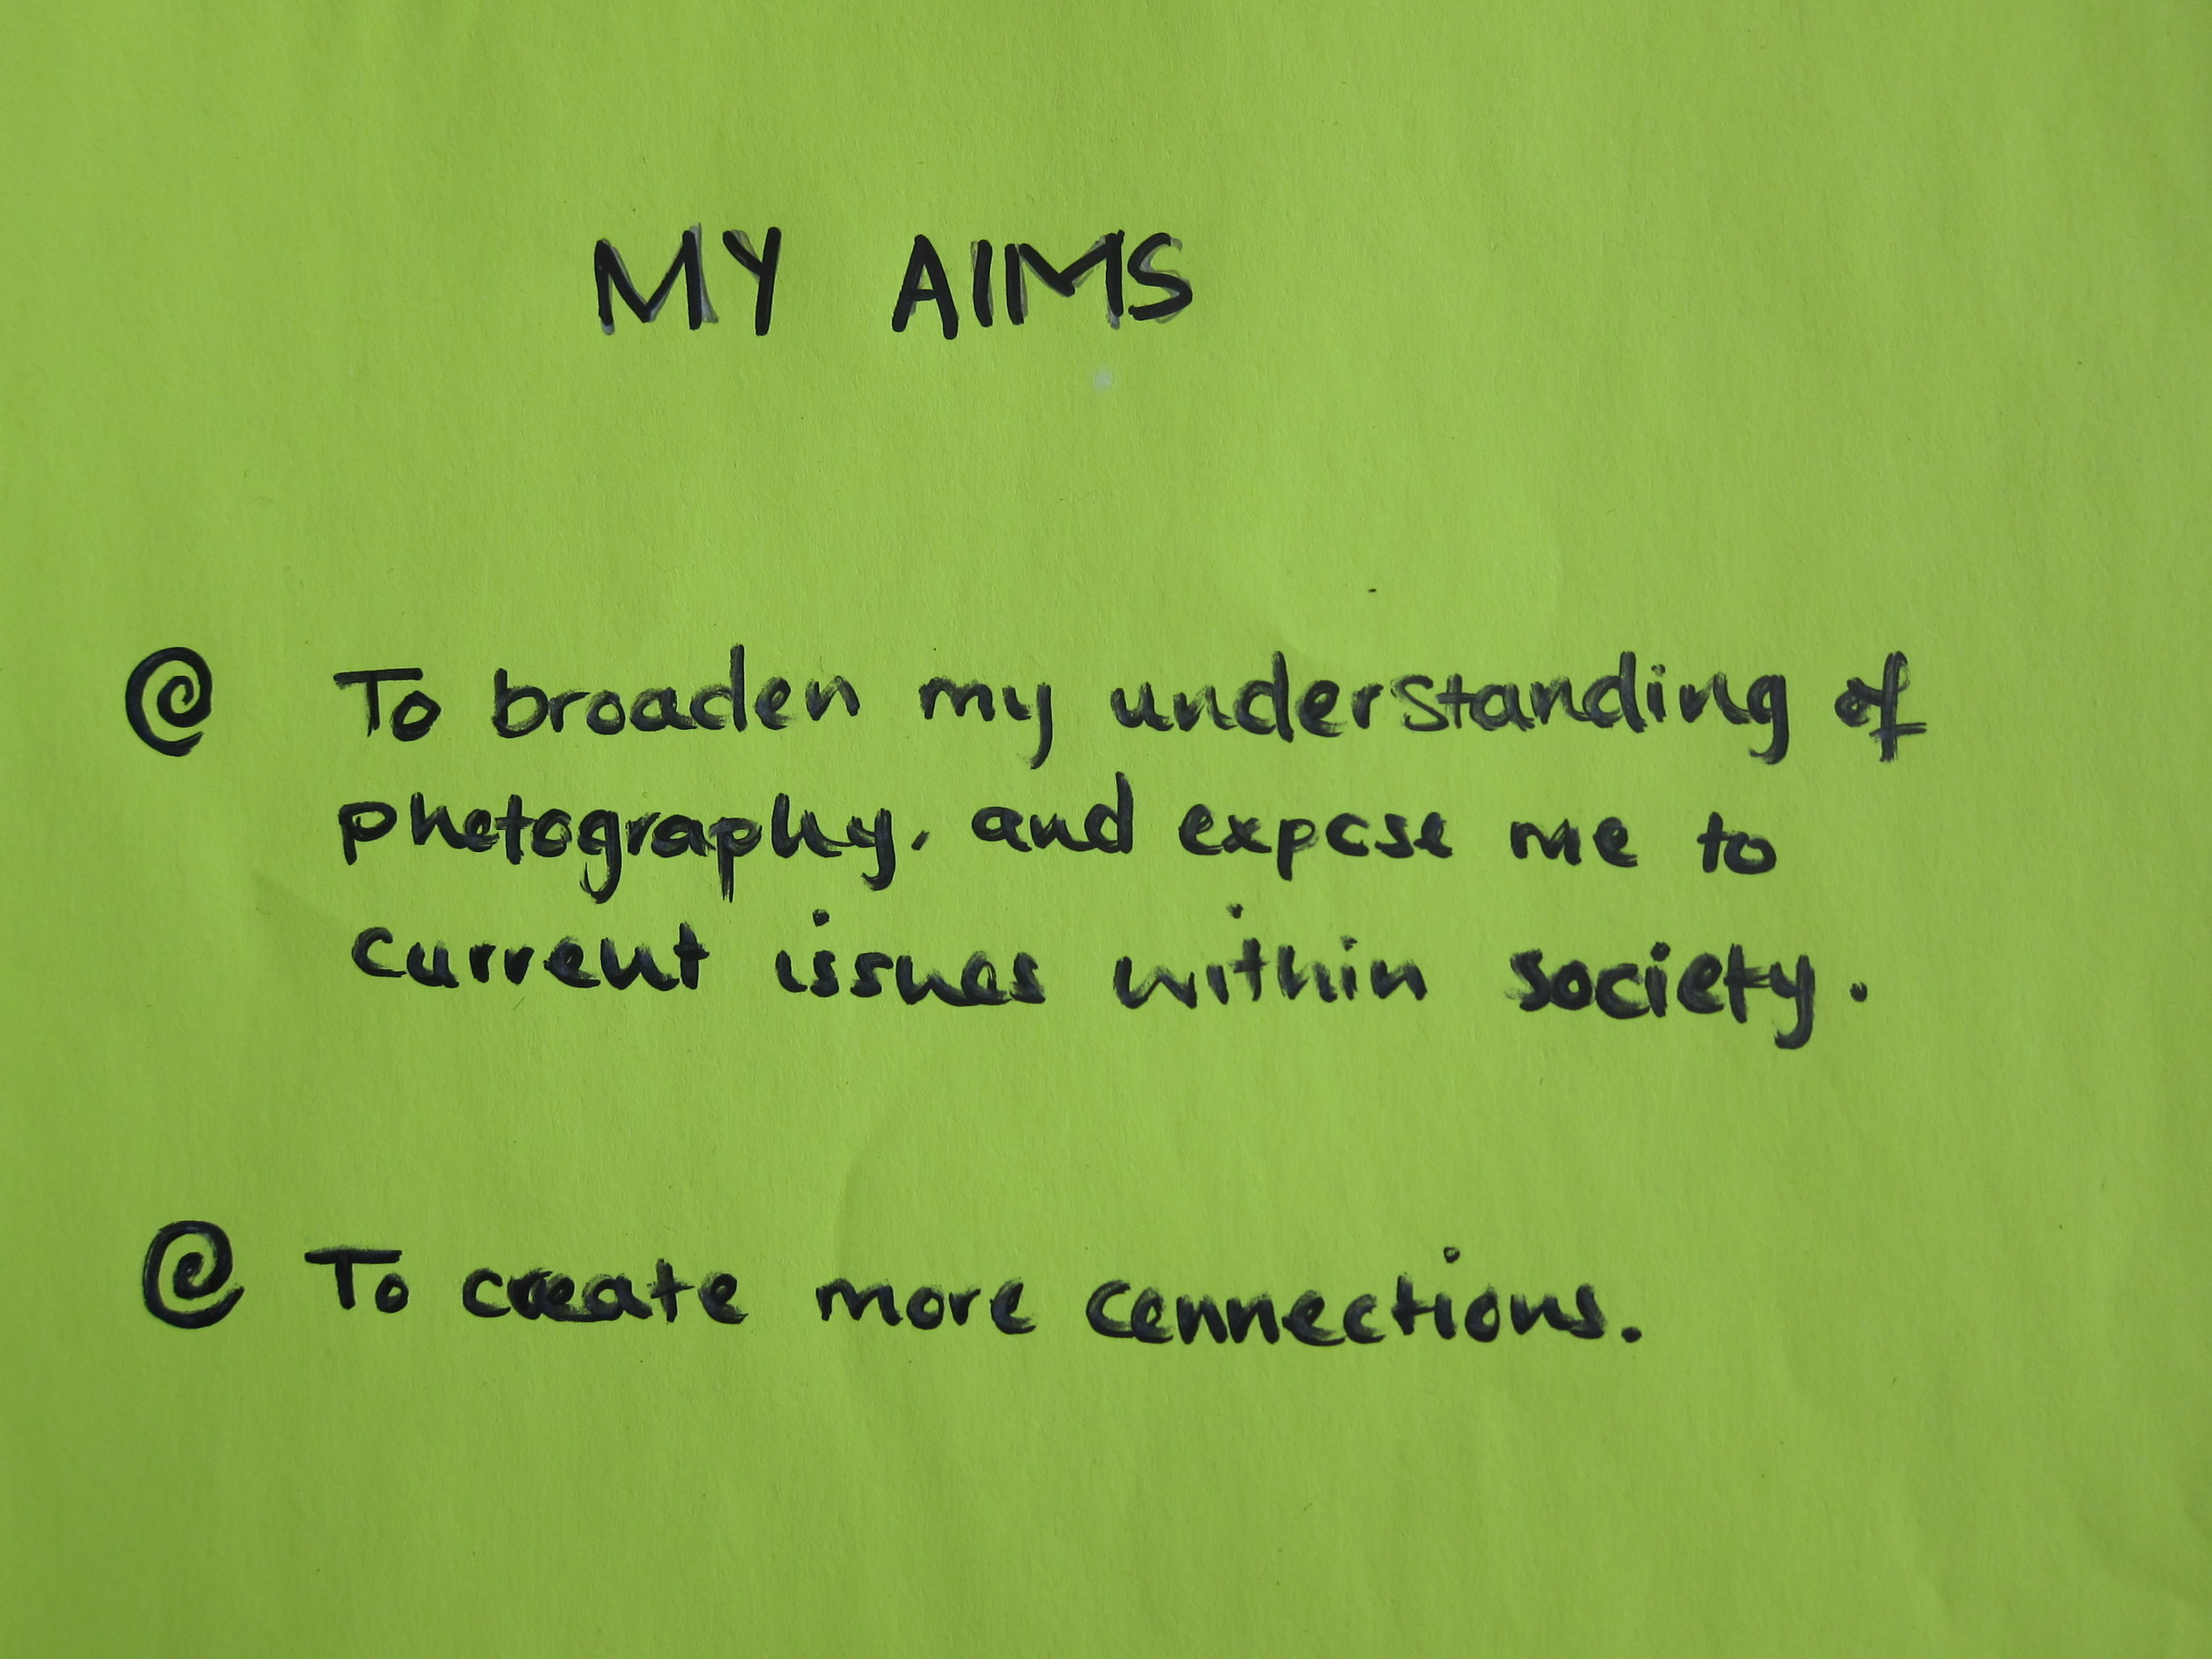 Day 2 - one young person's aims